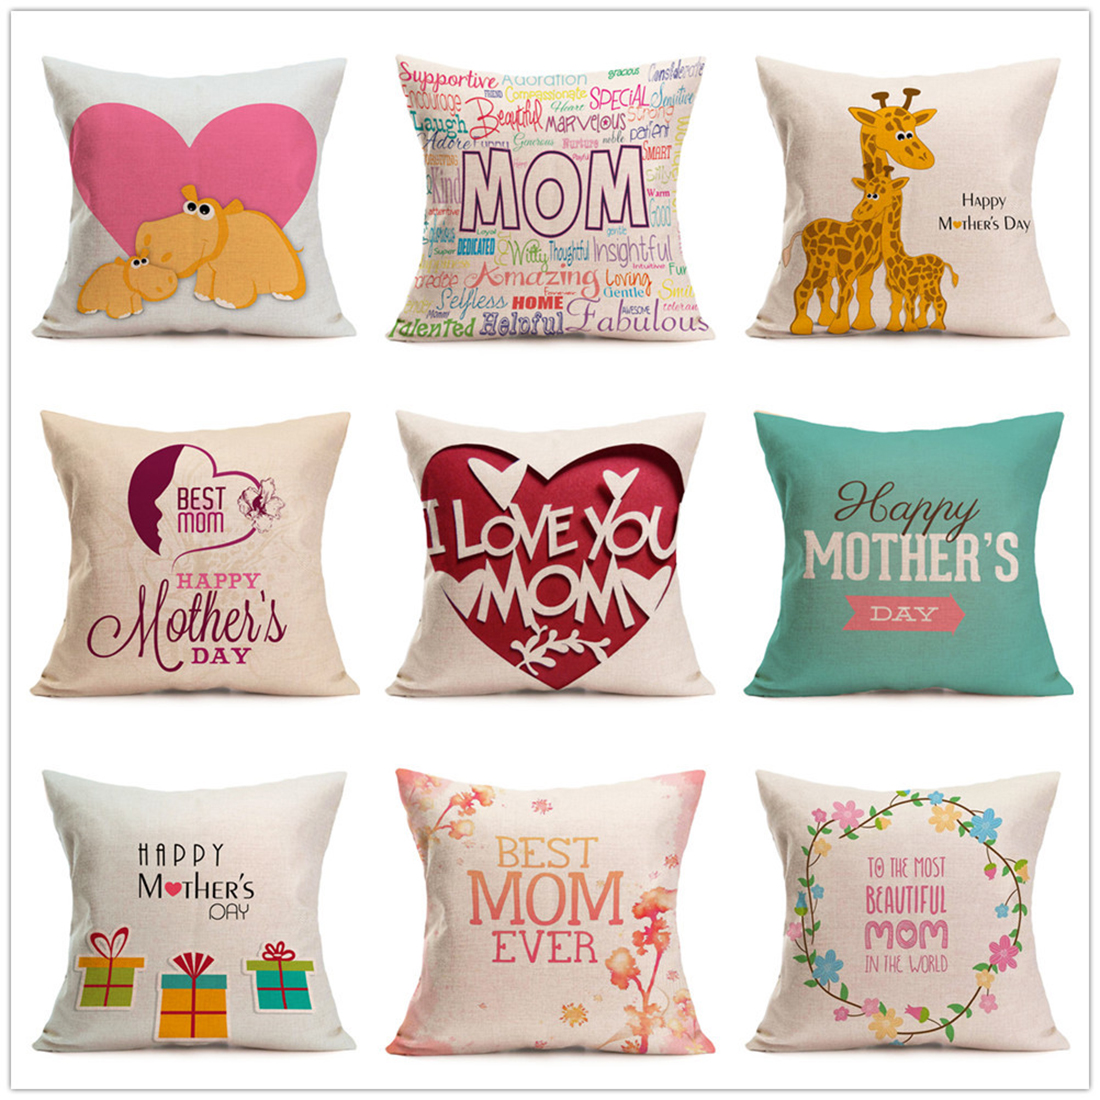 43x43cm Love Linen Cushion Cover Pillow Case Cotton Linen Square For Mothers Day Birthday Gifts Sofa Chair Home Decoration